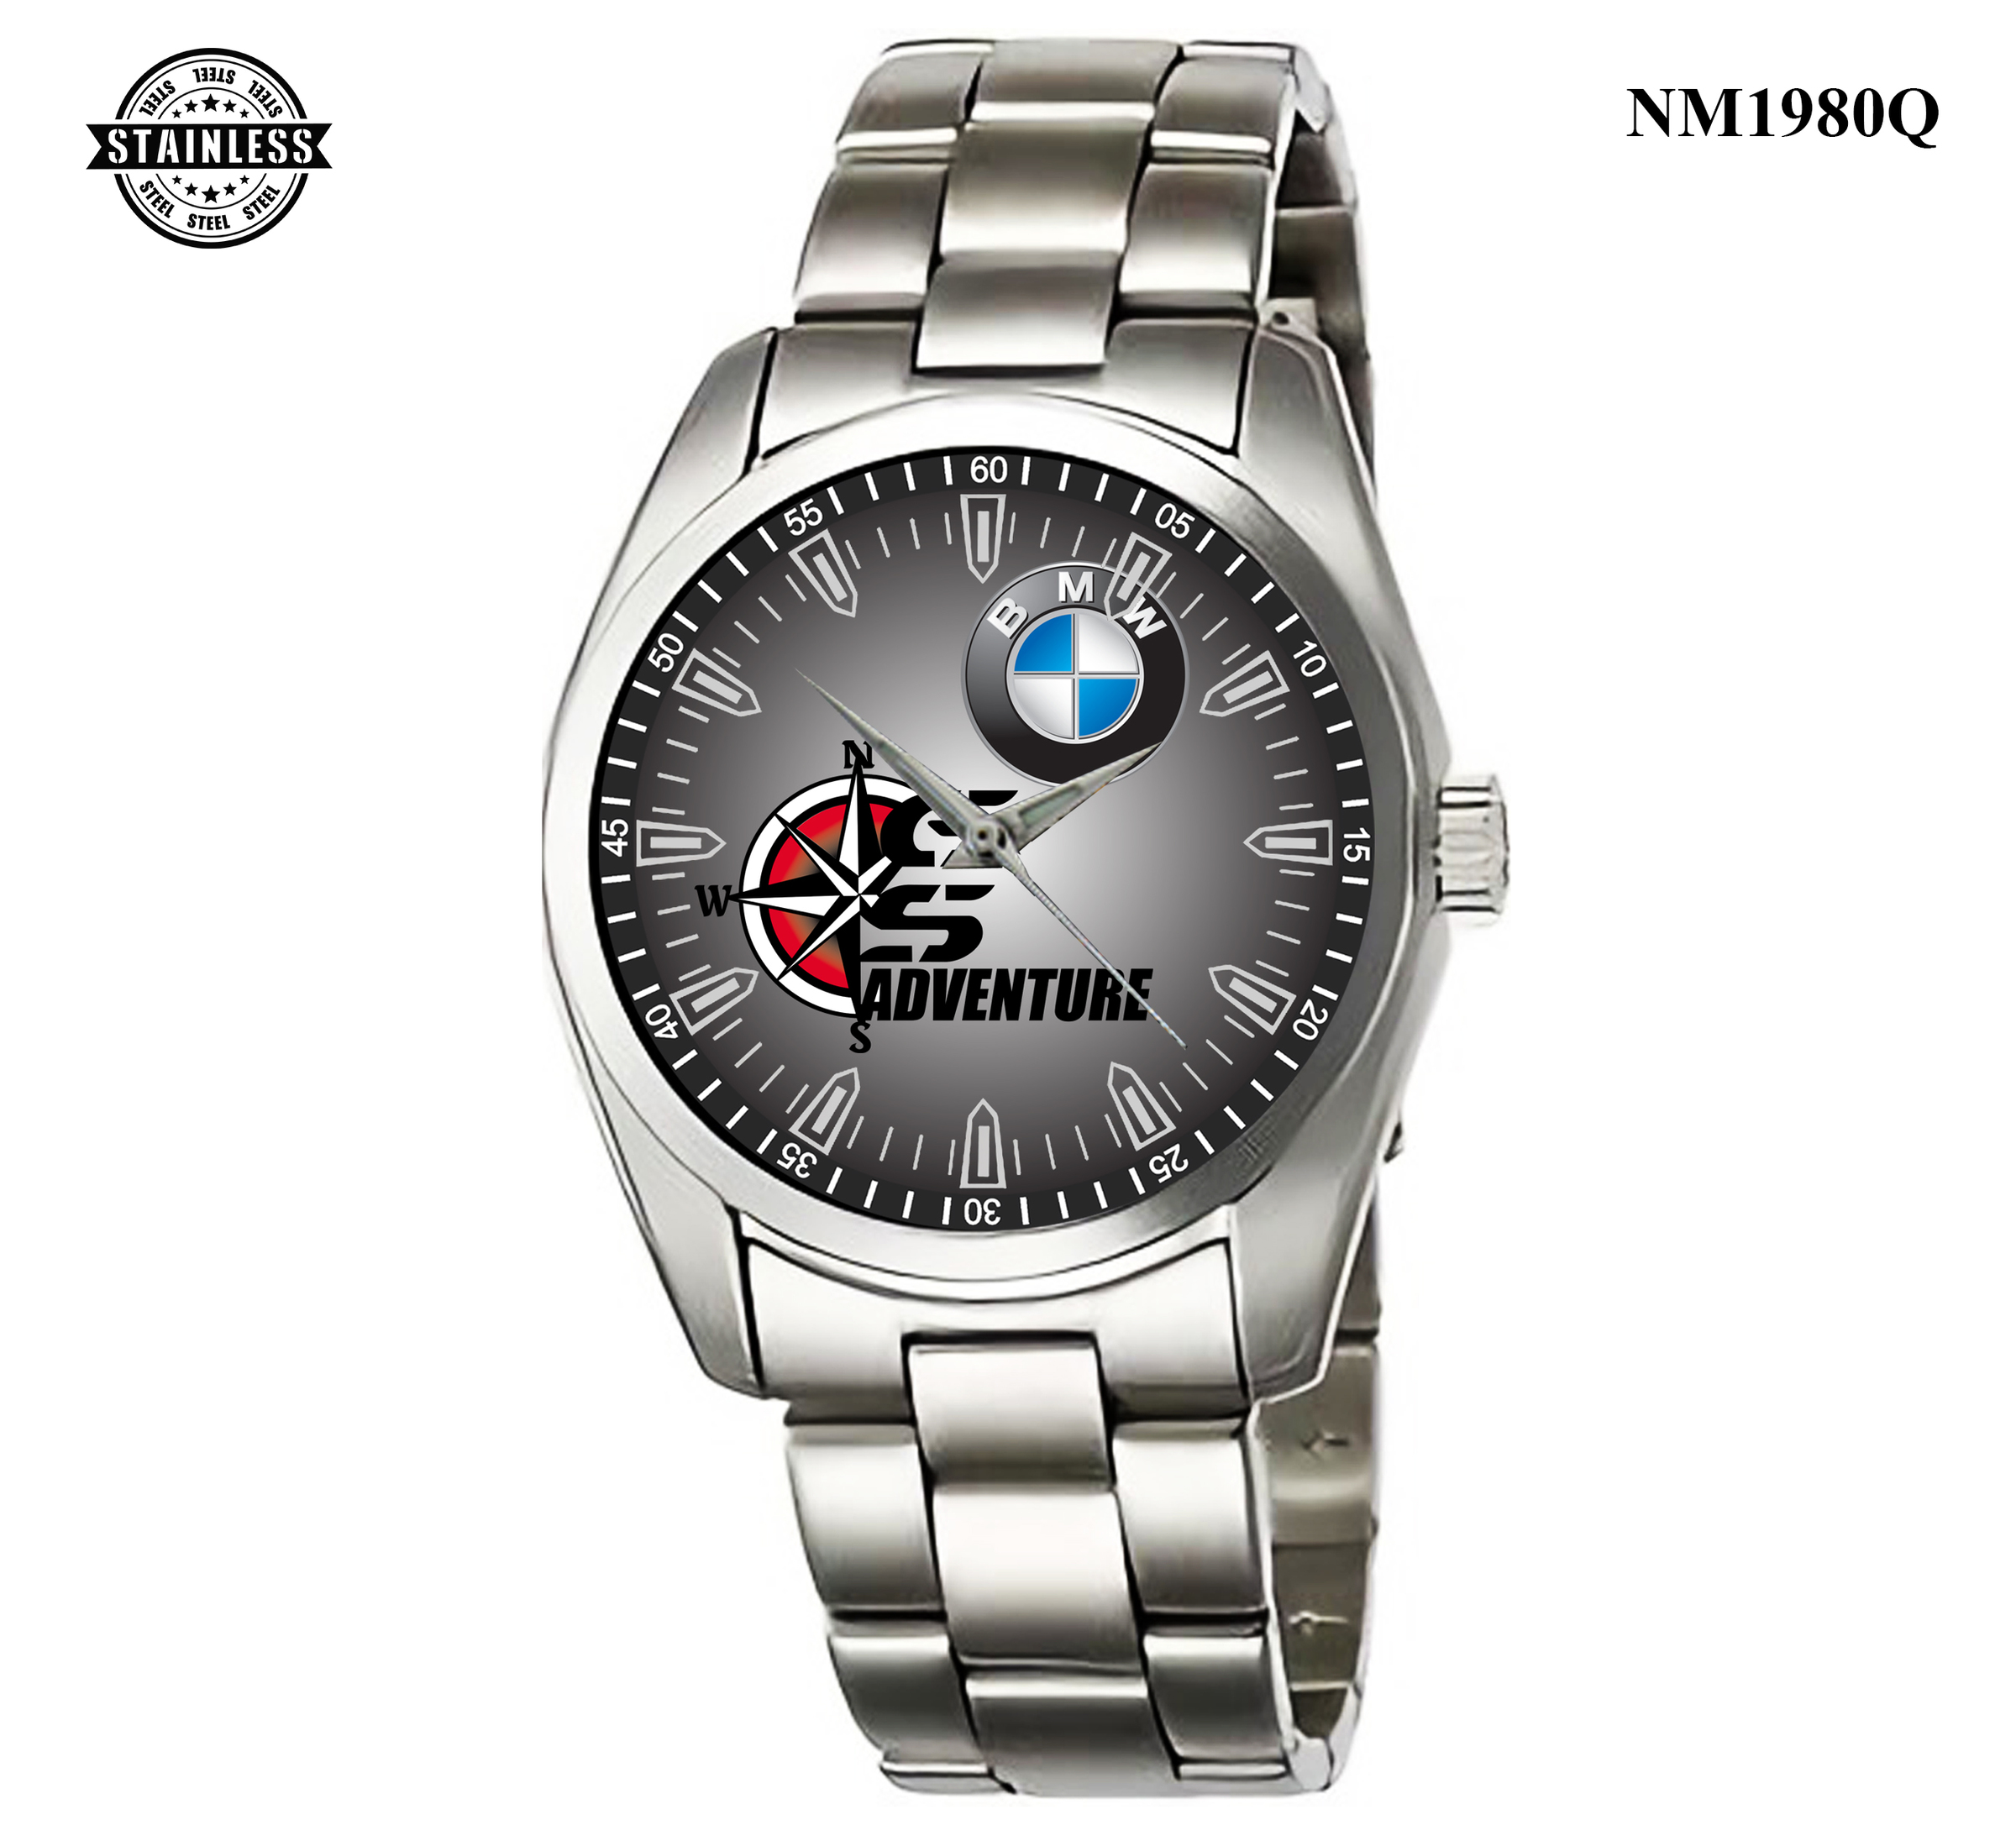 1.10 Mens Jewelery BMW GS ADVENTURE Sport Logo Rare Item Sport Metal Watch.jpg